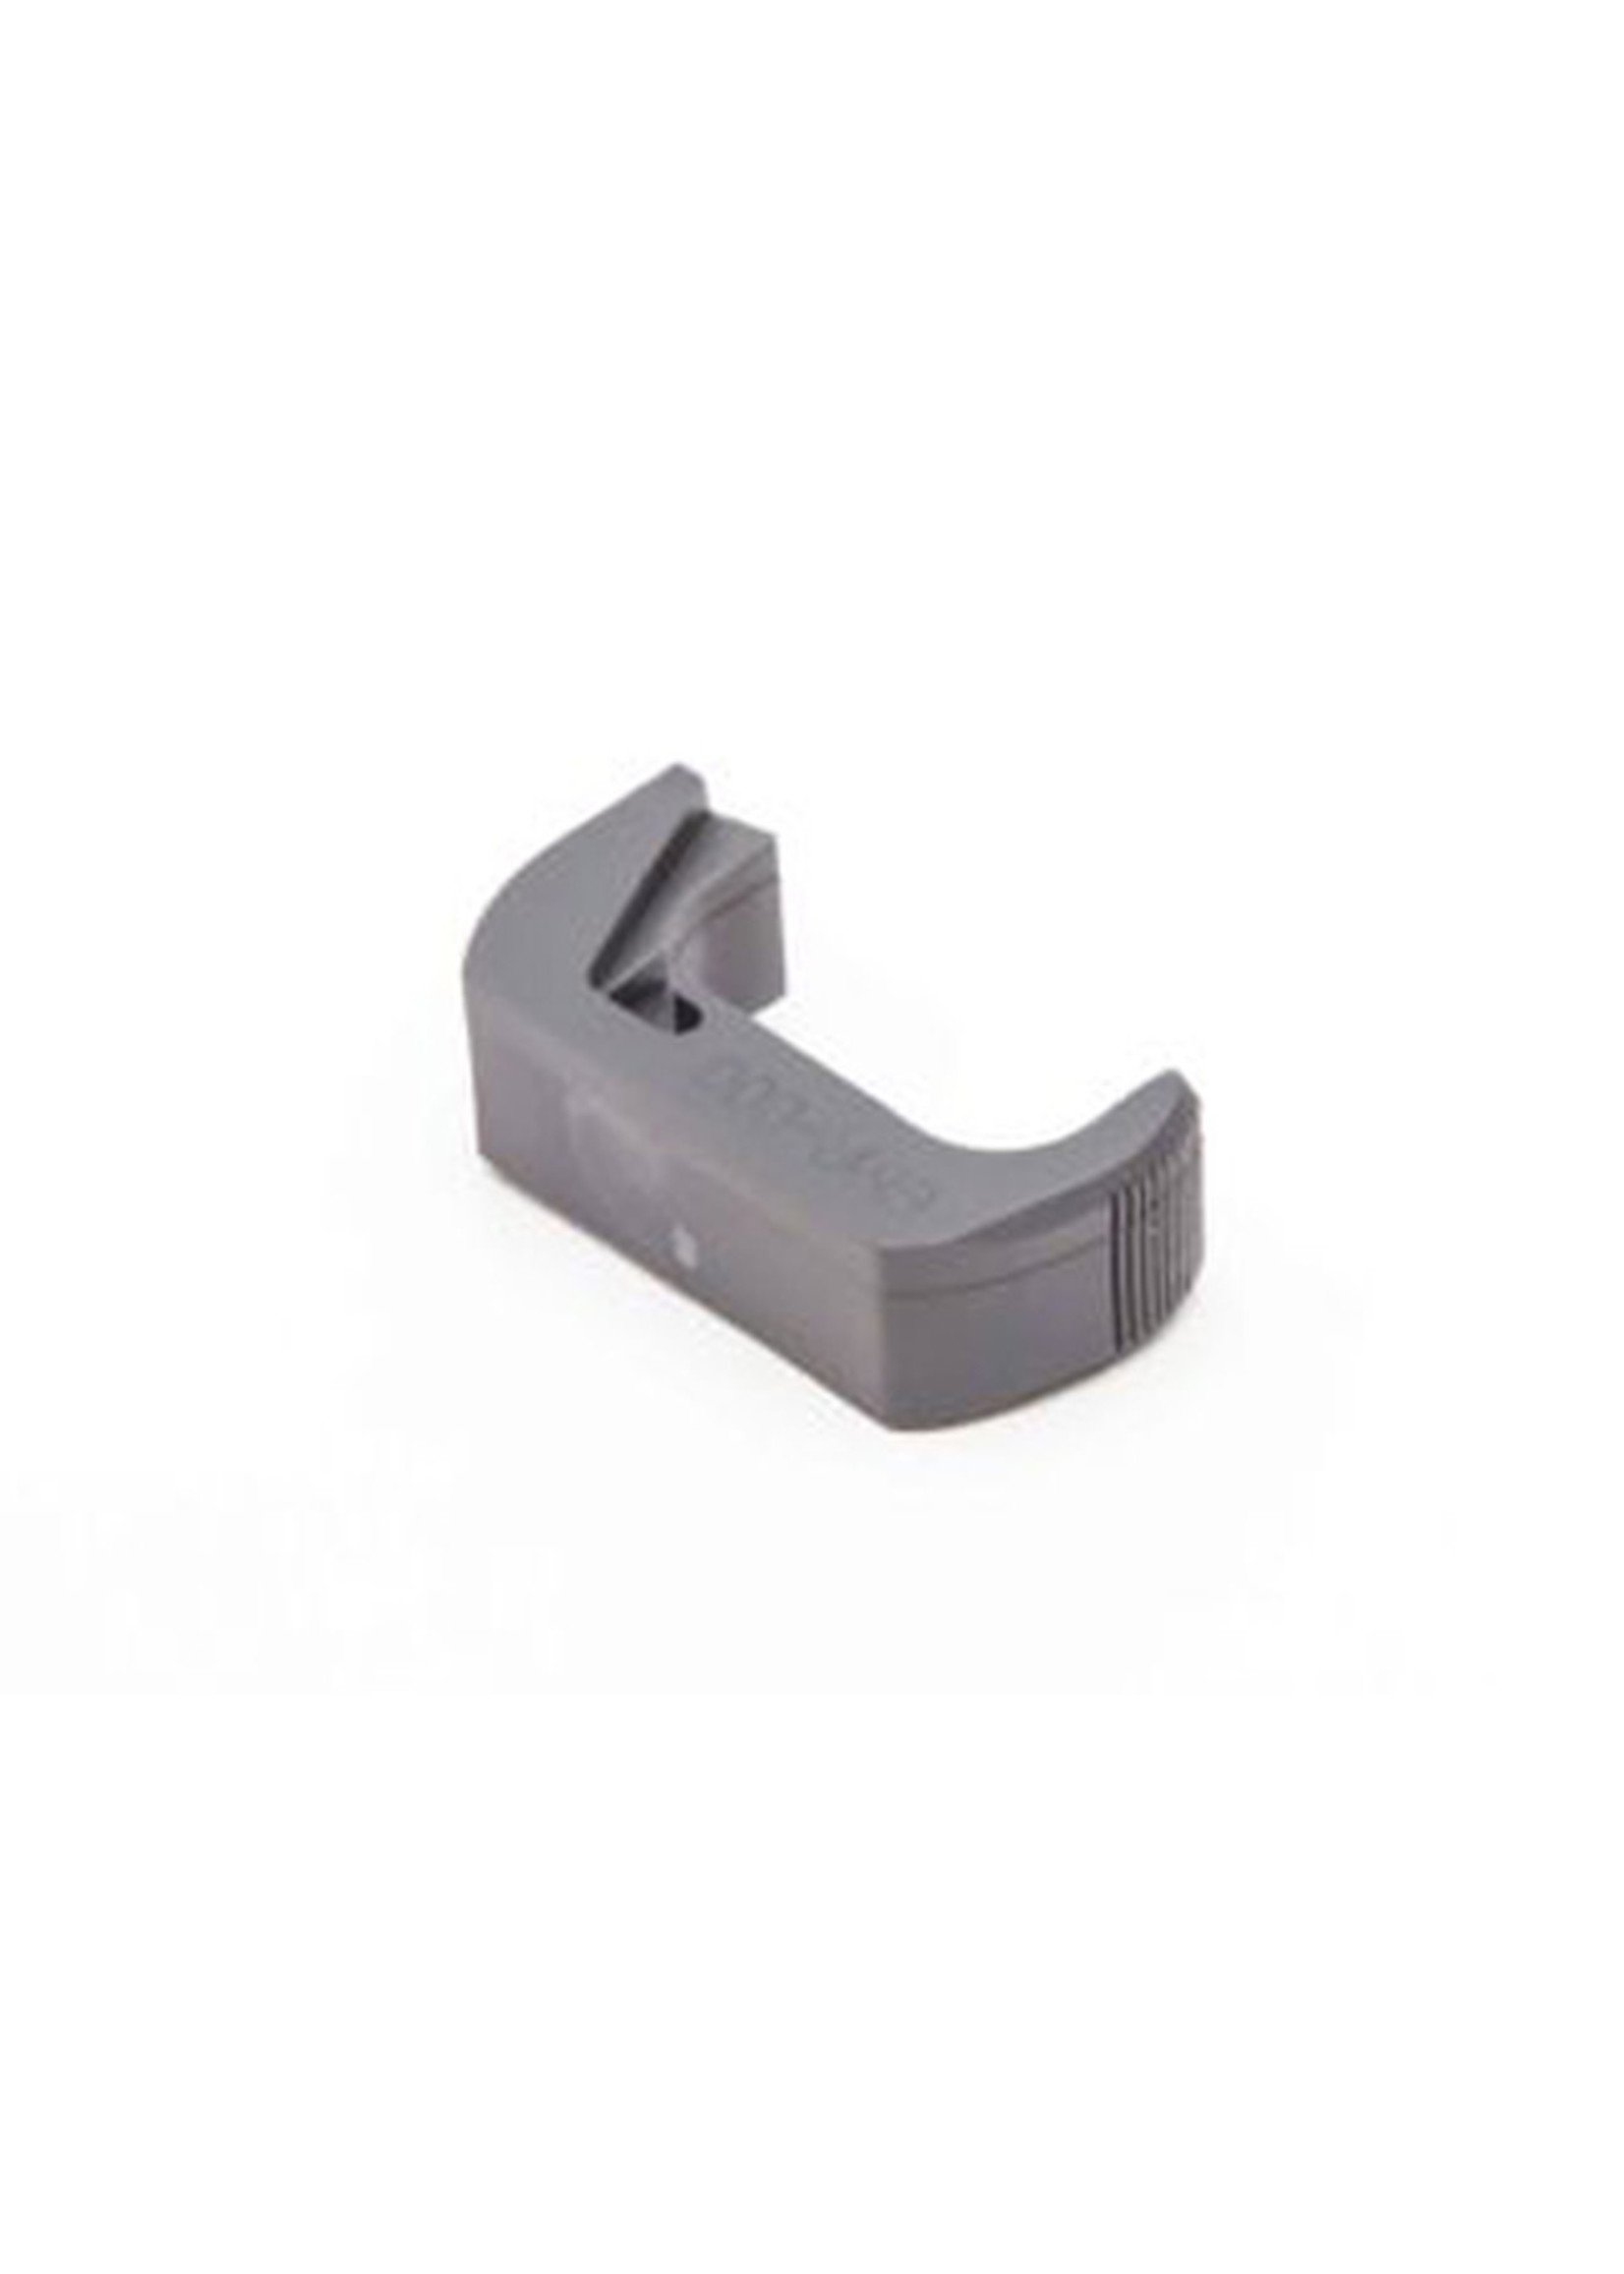 TANGO DOWN VICKERS TACTICAL GLOCK MAG RELEASE